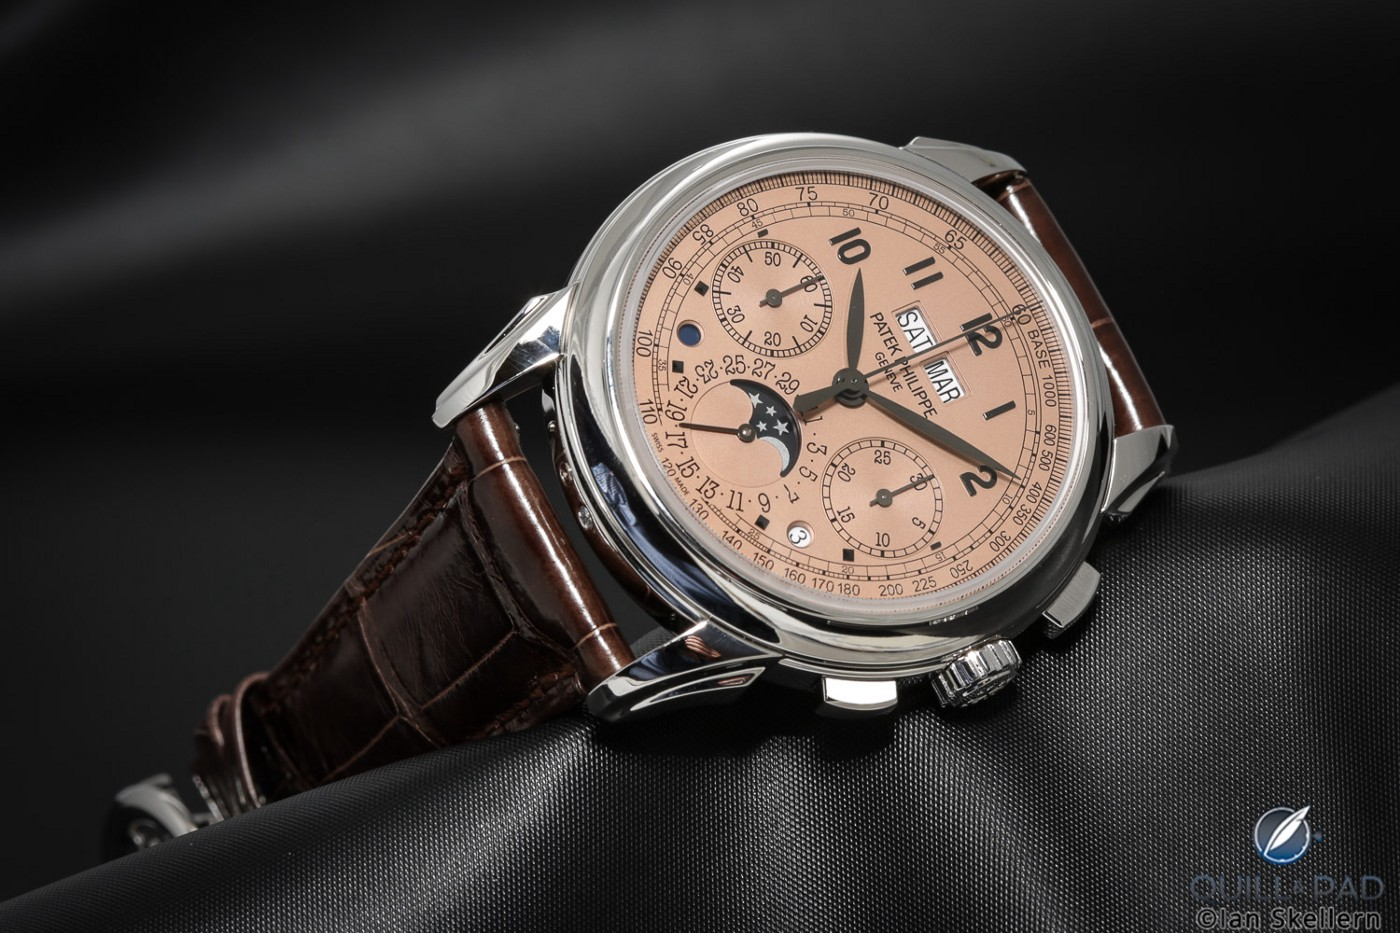 Patek Philippe Ref 5270P Perpetual Chronograph with salmon dial